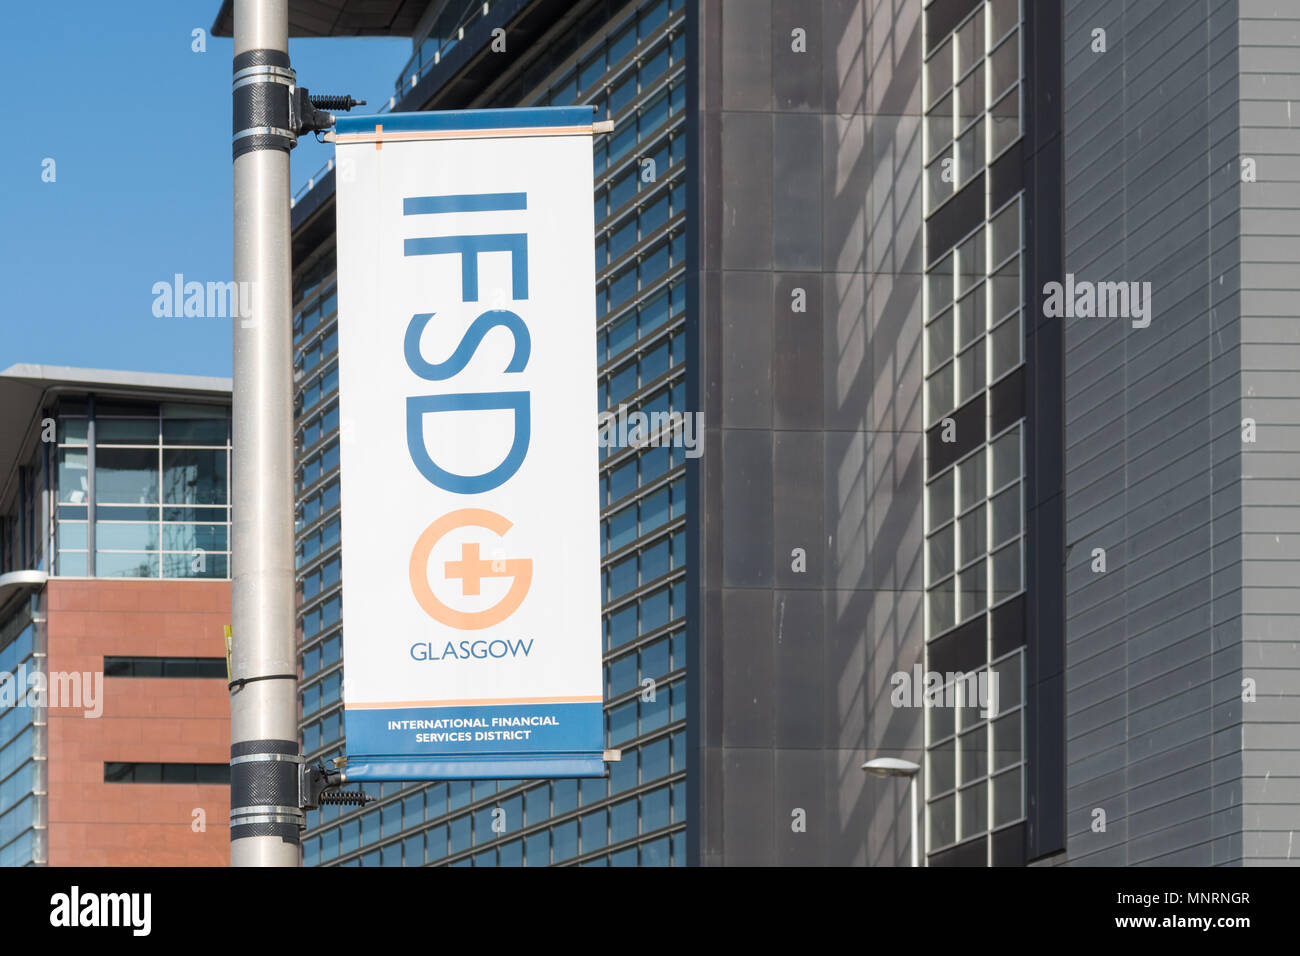 Glasgow IFSD - International Financial Services District - banner, Scotland, UK - Stock Image